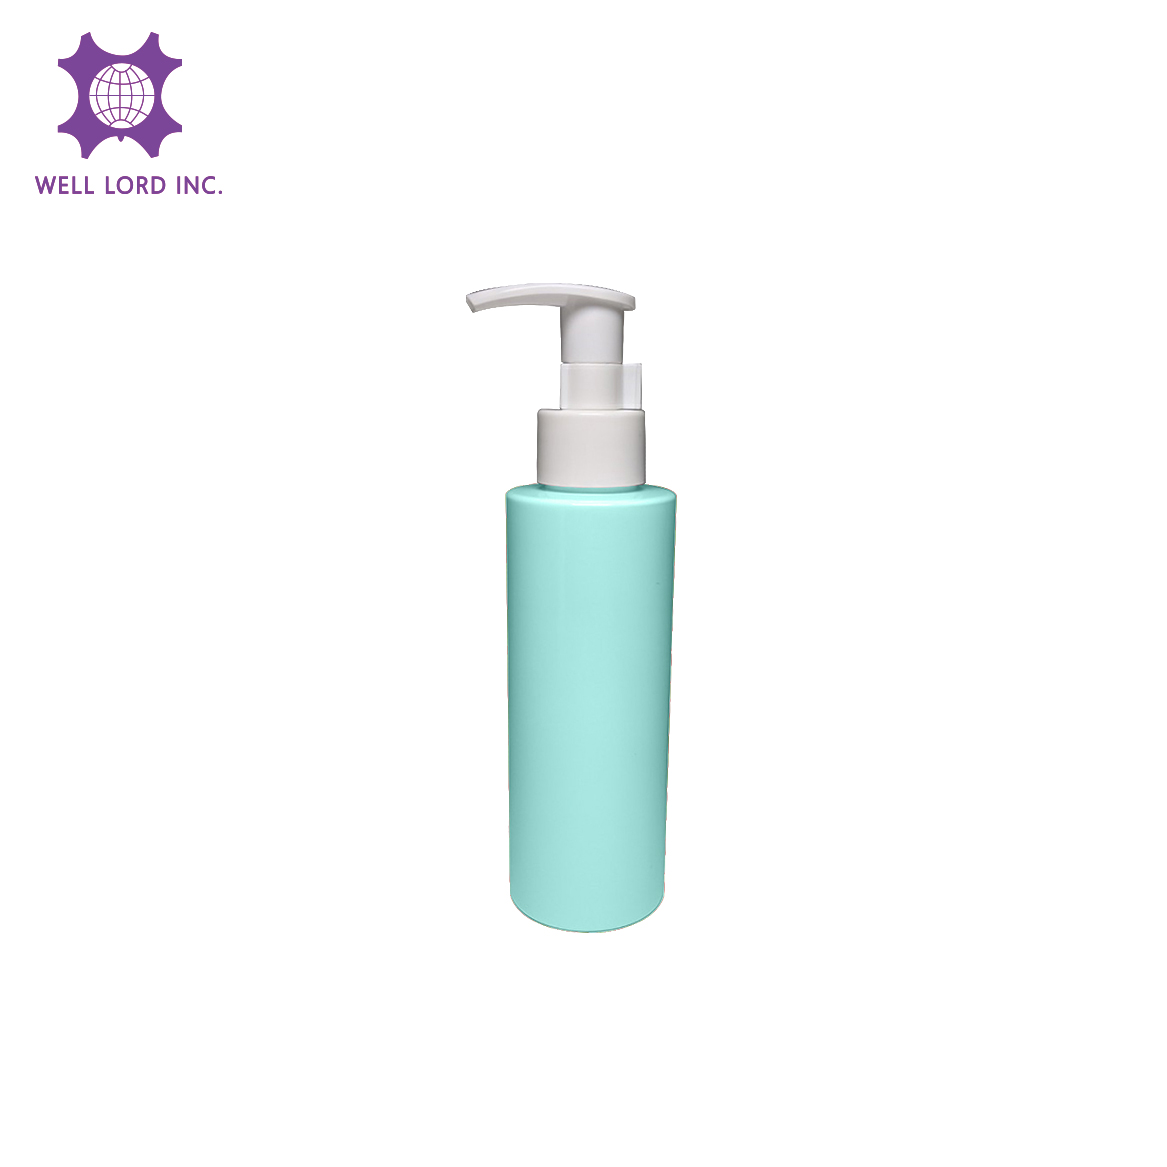 Plastic Pump Bottle Shampoo Lotion Soap Dispenser 150ml plastic spray bottles